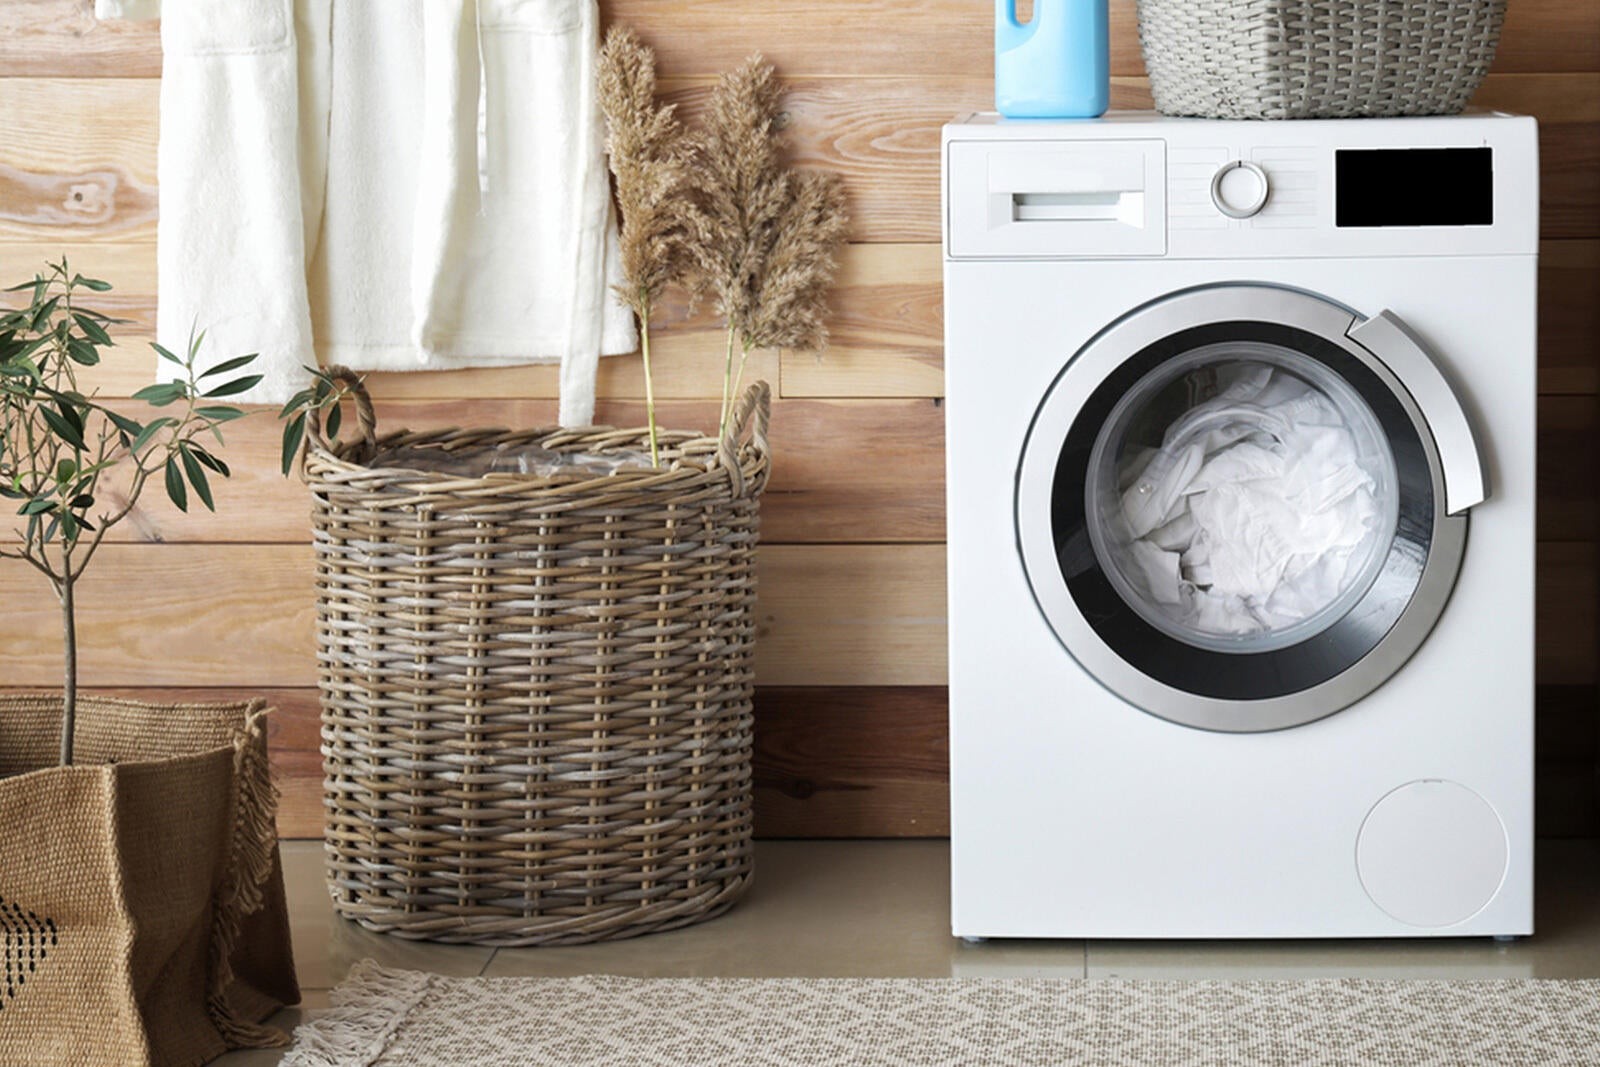 Clothes dryer in a laundry room with damp clothes inside